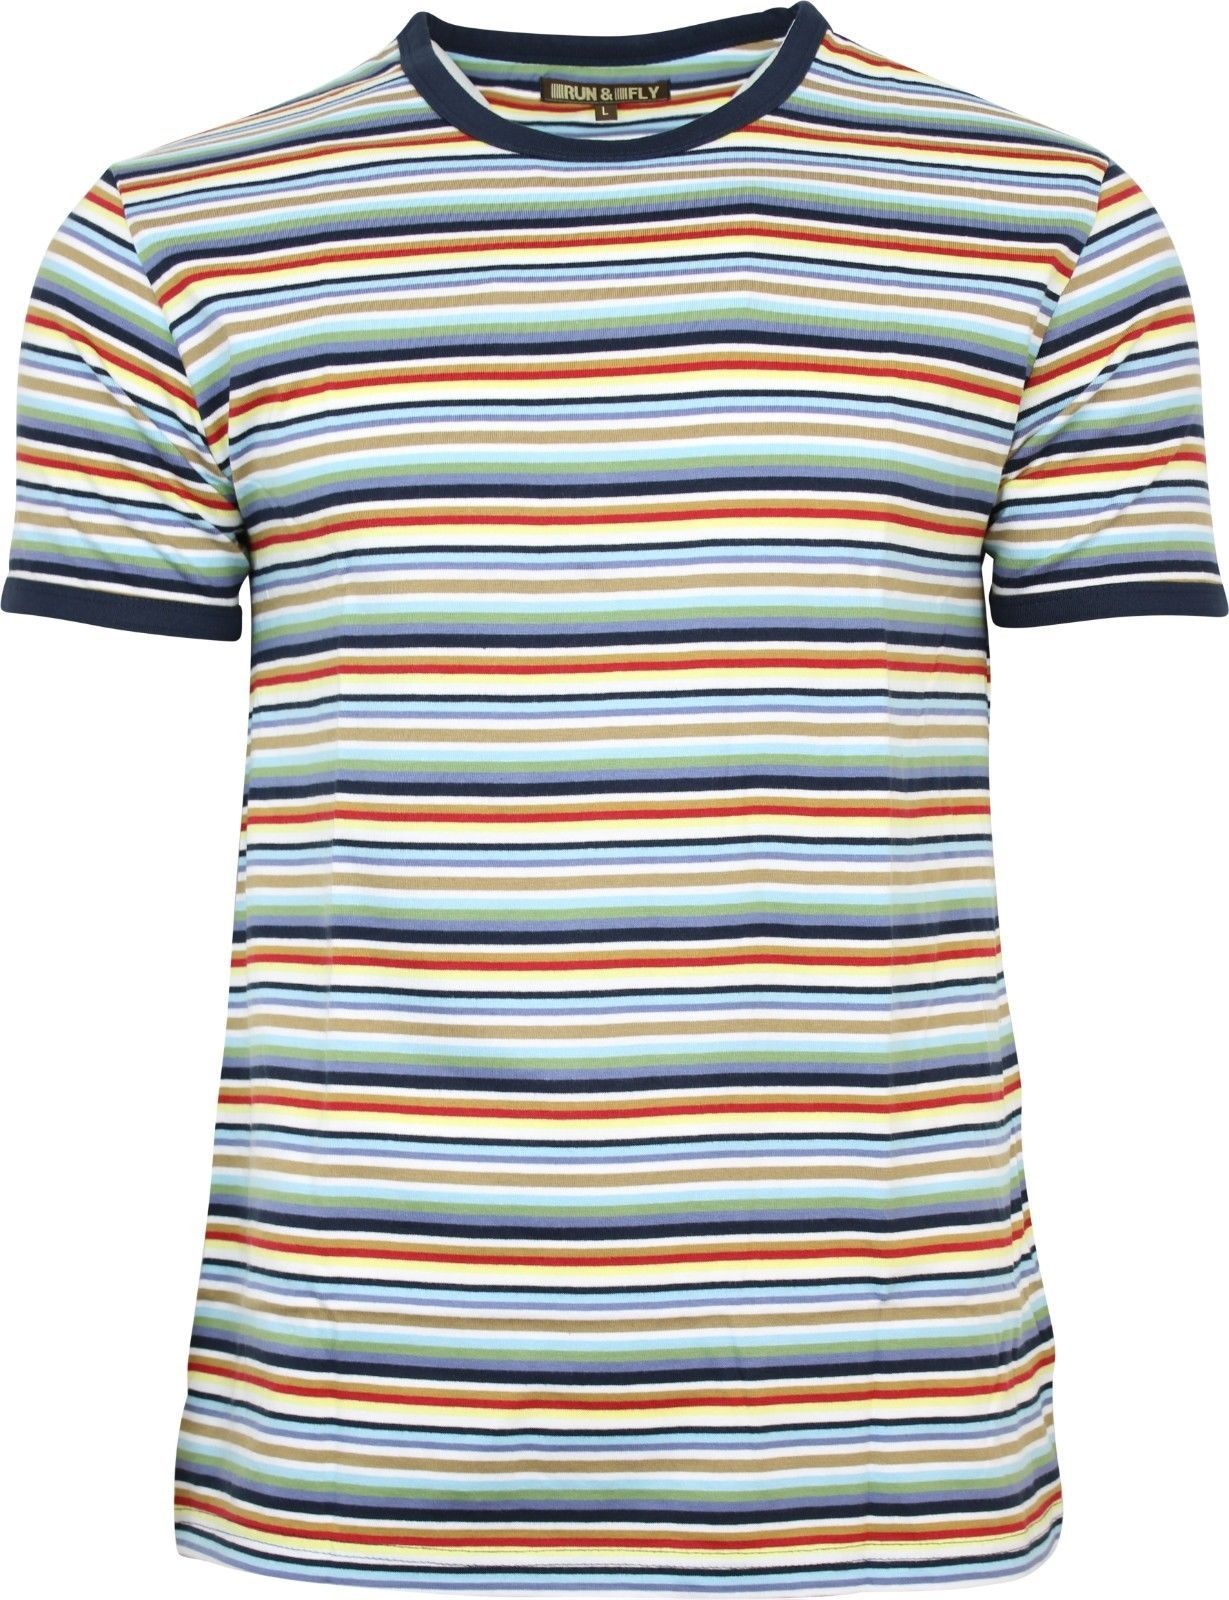 07300aa8 Mens Run & Fly Multi Coloured Retro Indie Striped Ringer T-Shirt 60s 70s  80s 90s